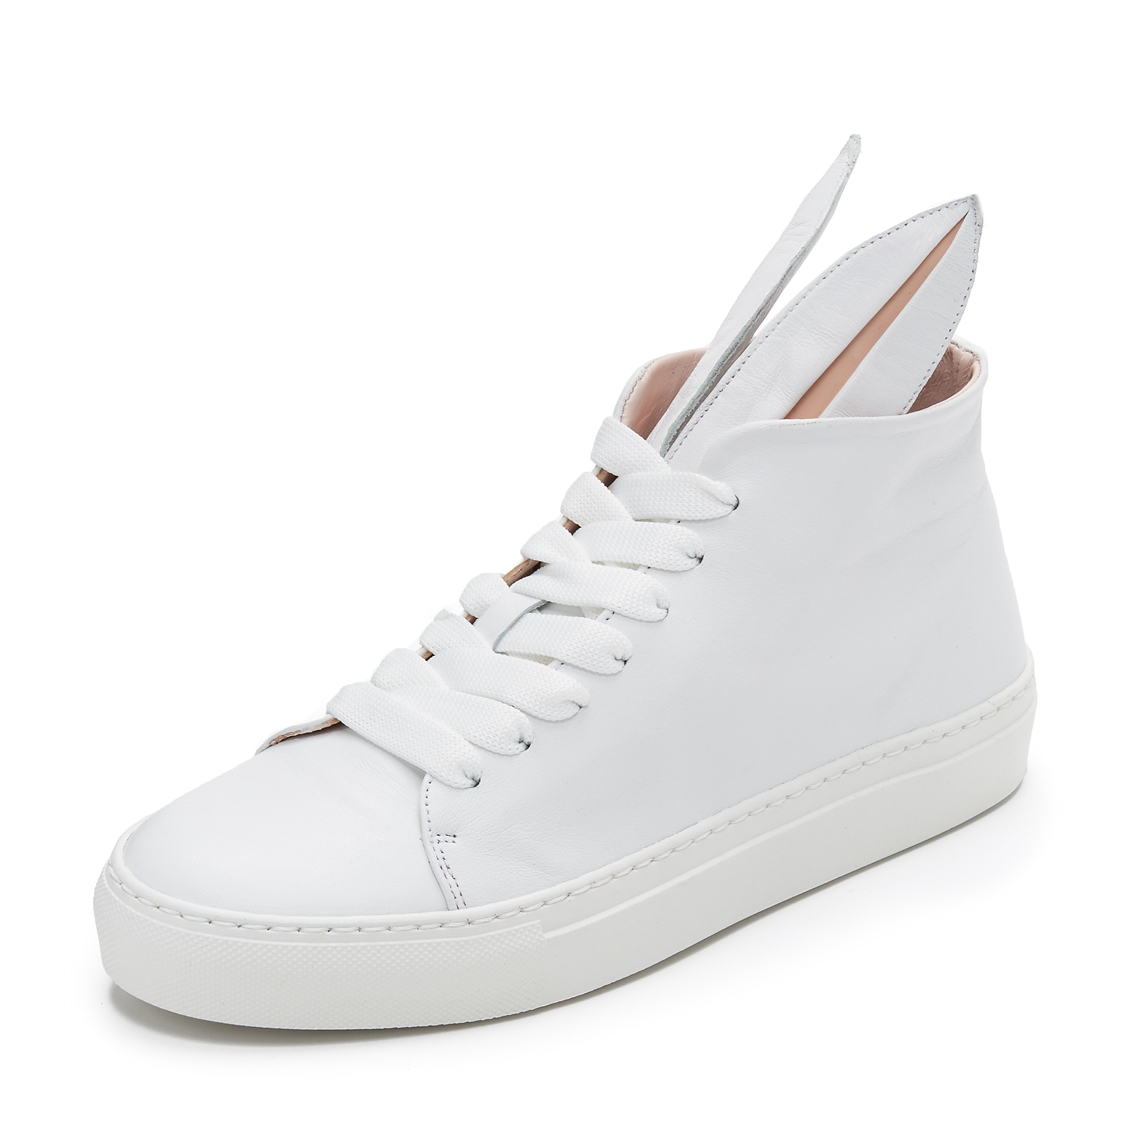 Leather sneakers $289